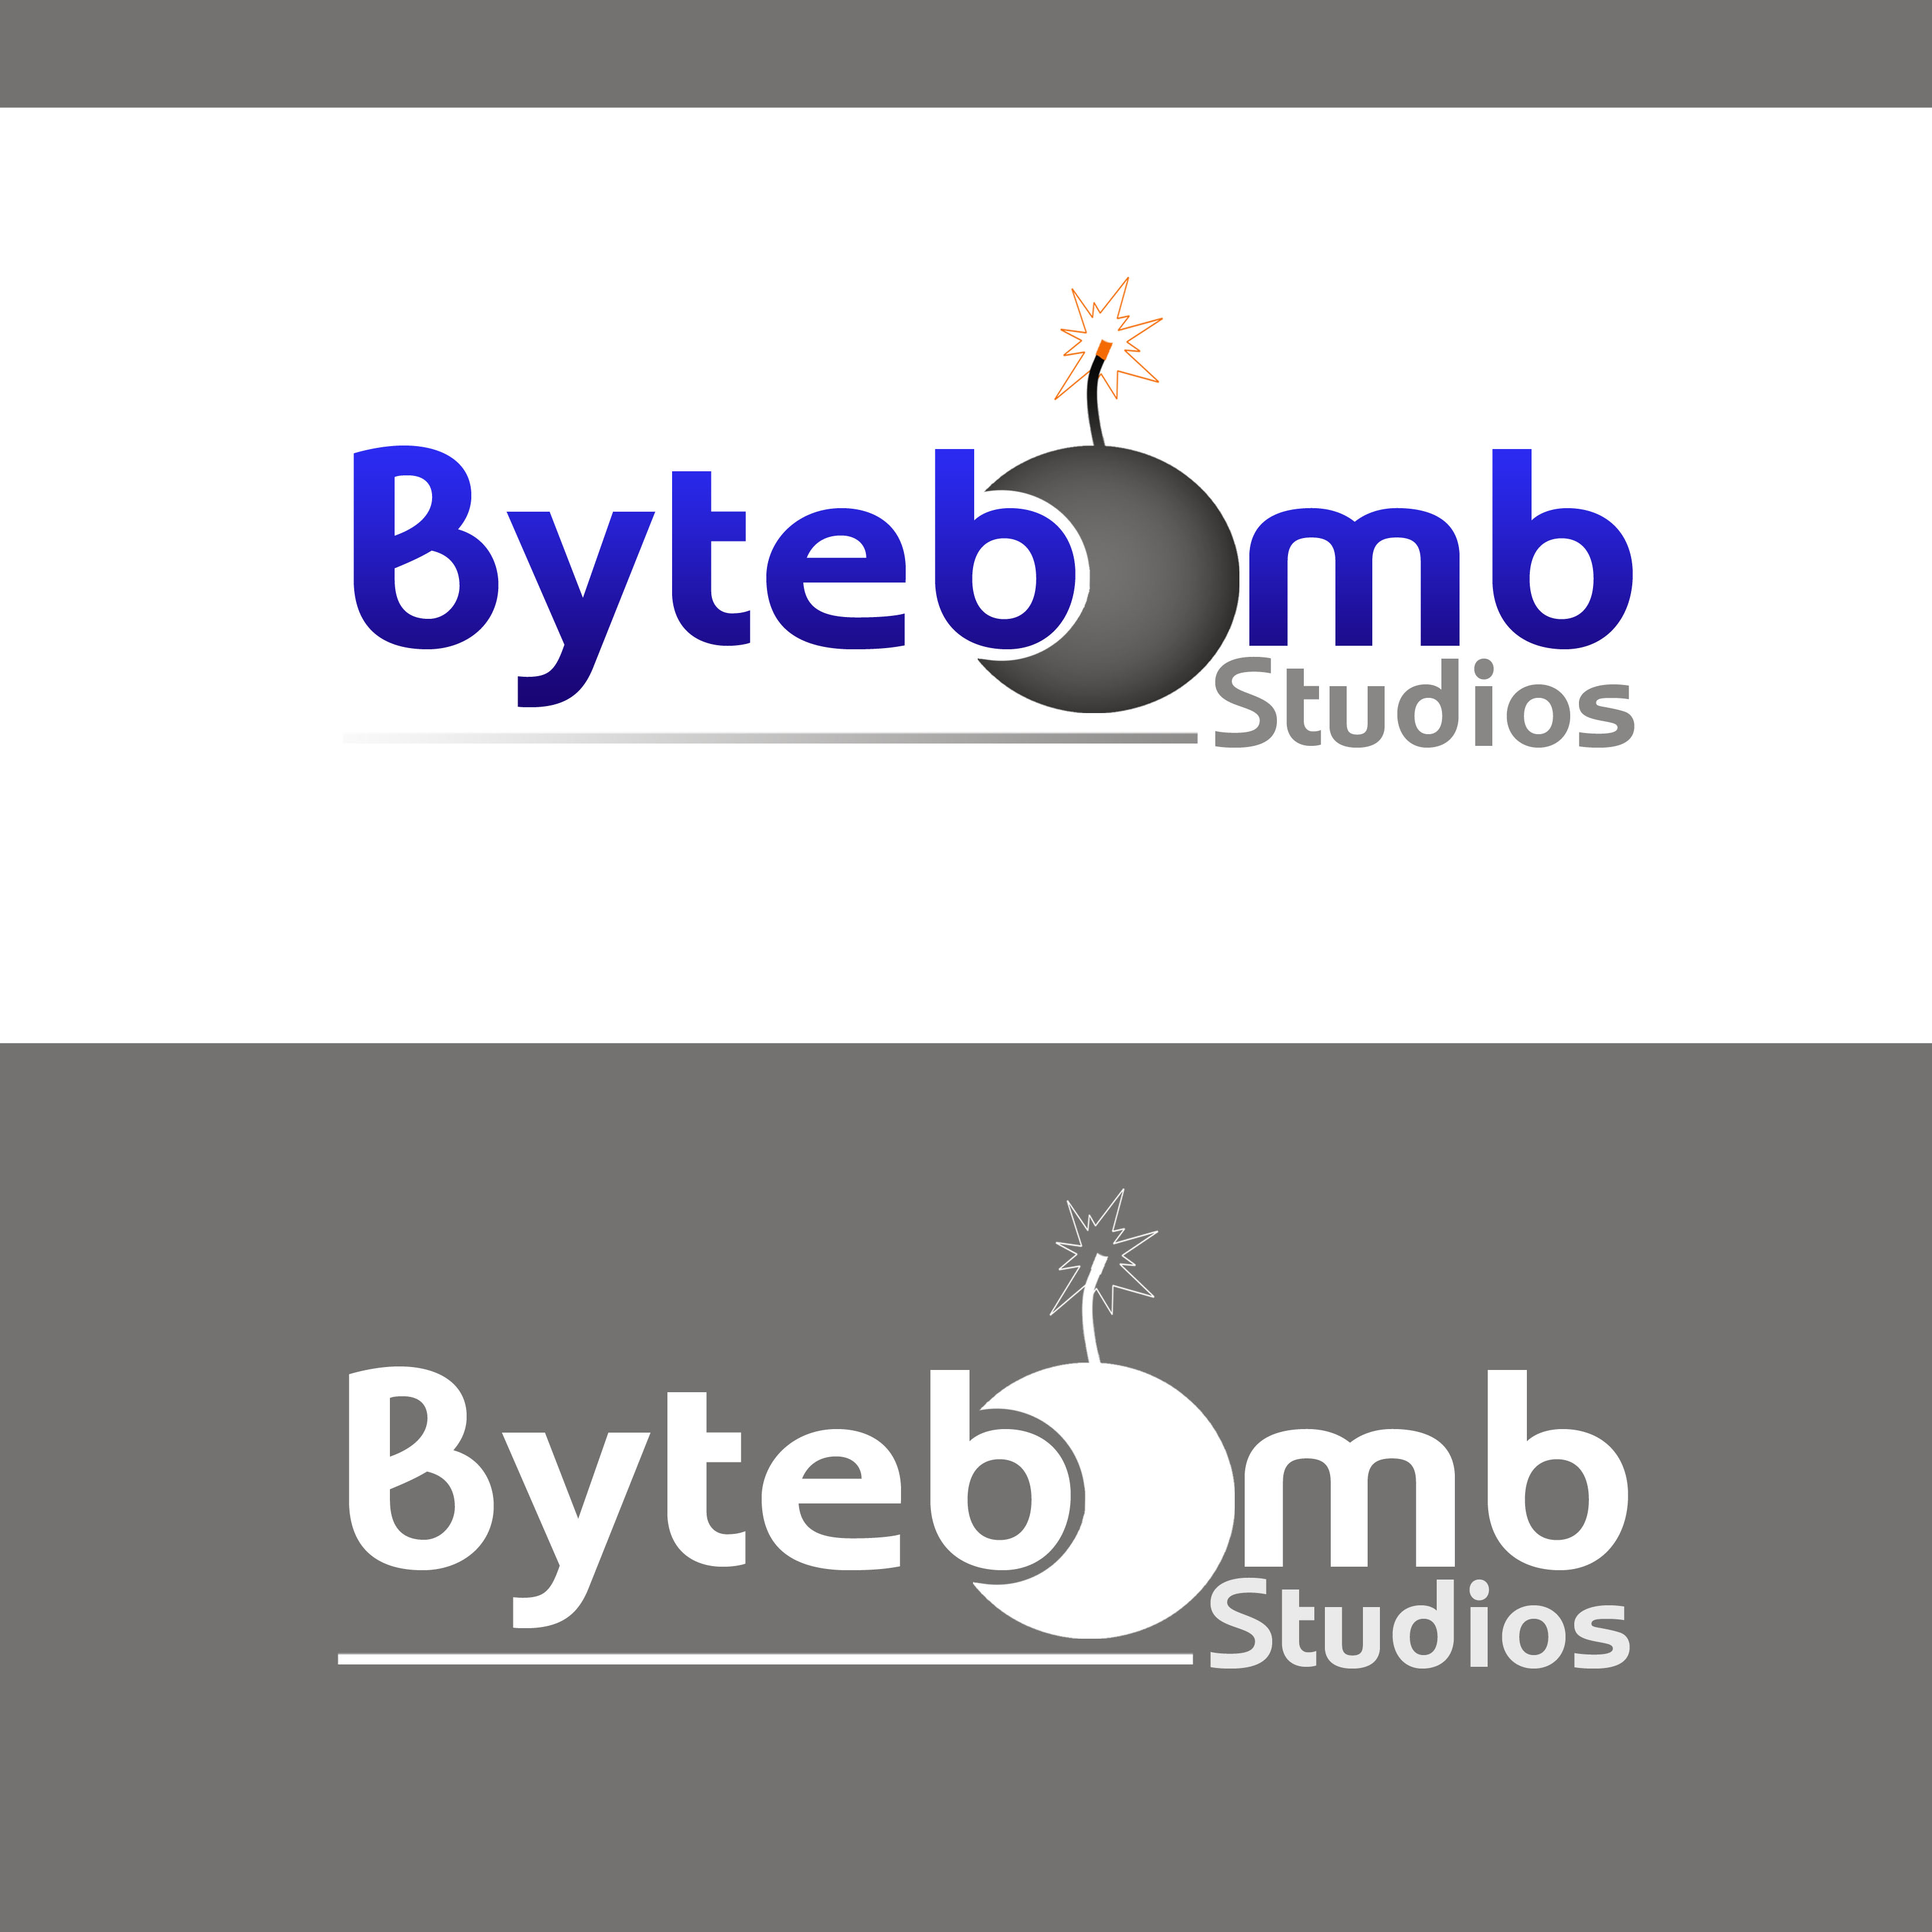 Logo Design by Allan Esclamado - Entry No. 42 in the Logo Design Contest Captivating Logo Design for ByteBomb Studios.